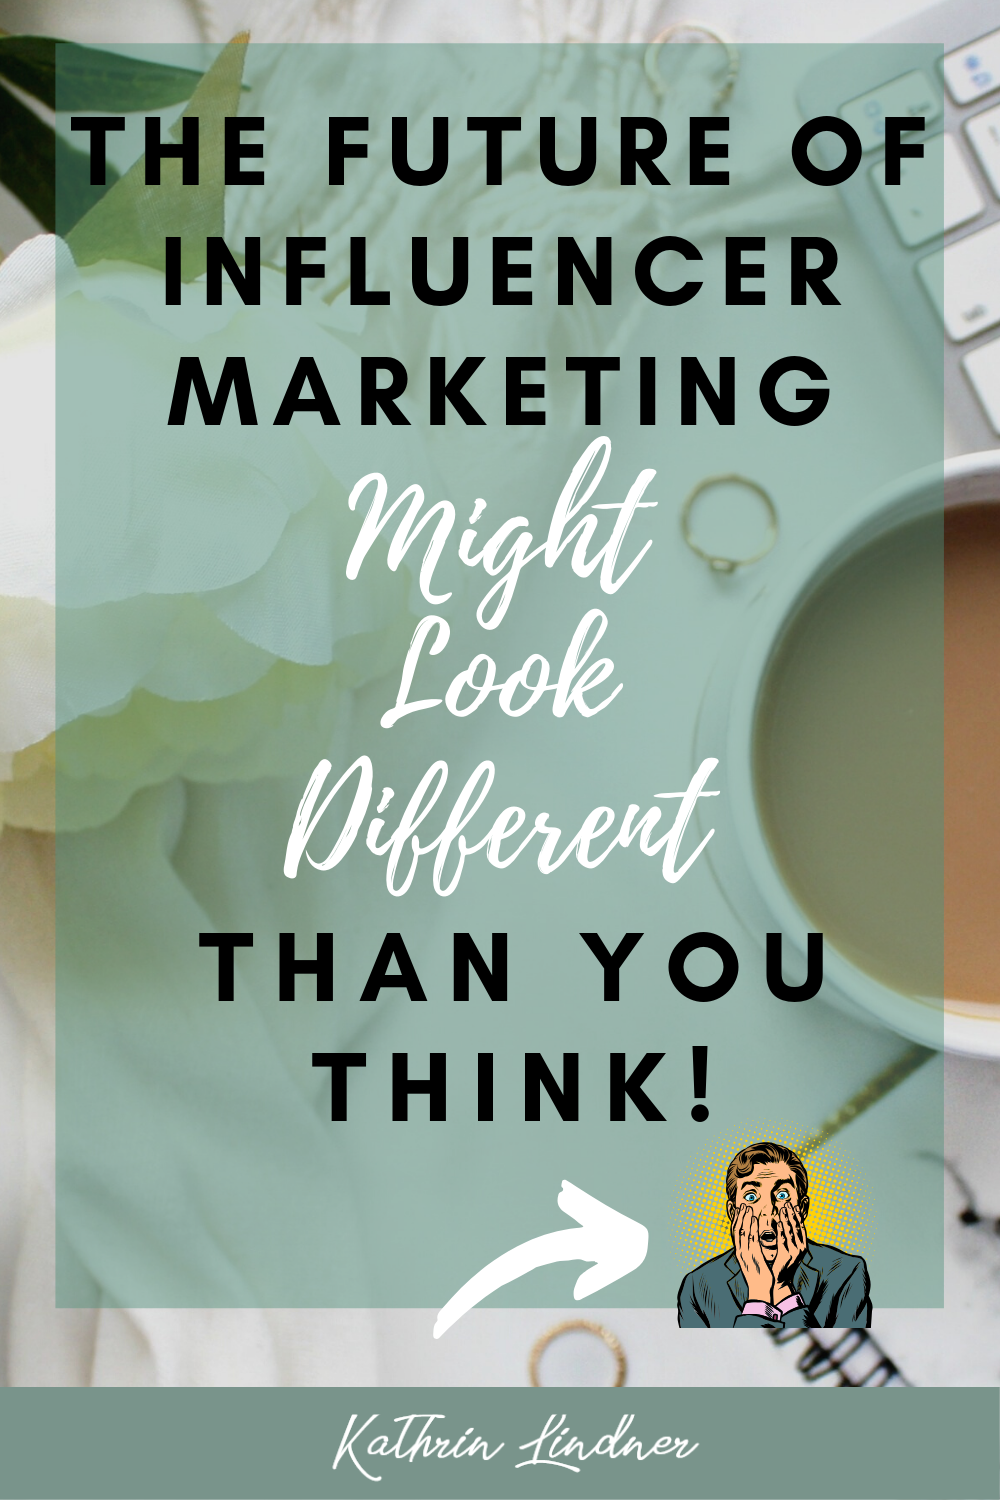 The Future of Influencer Marketing Might Look Different Than You Think!